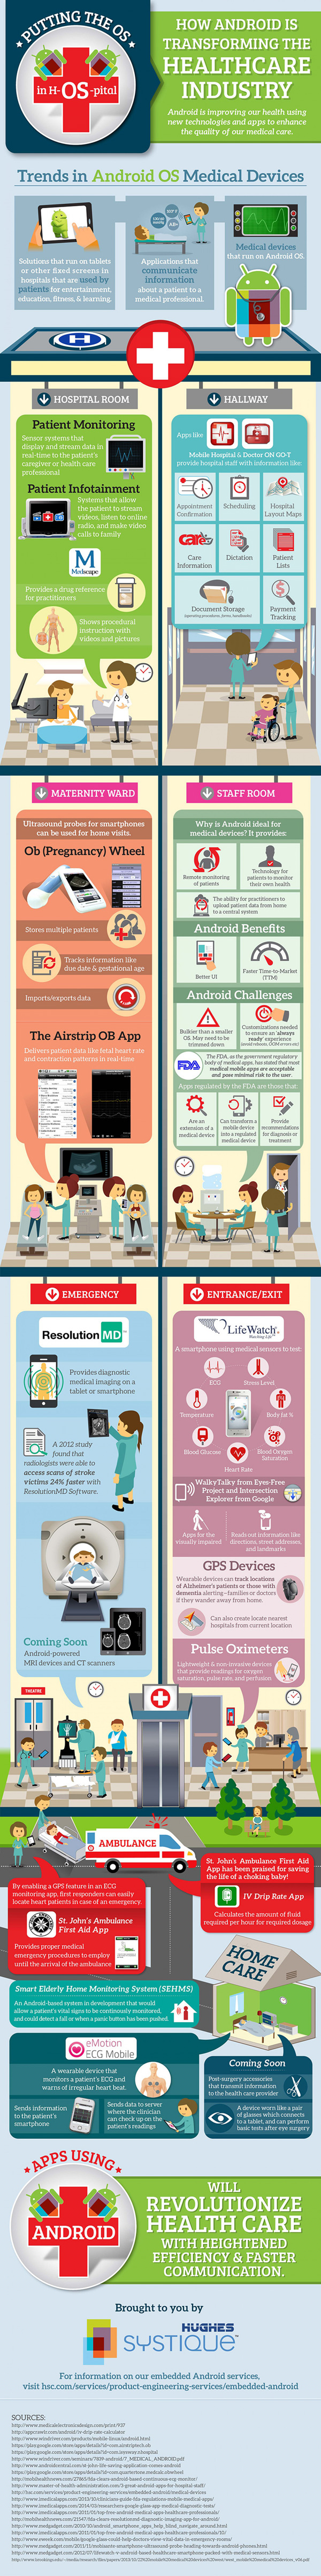 Medical-Apps-Market infographic